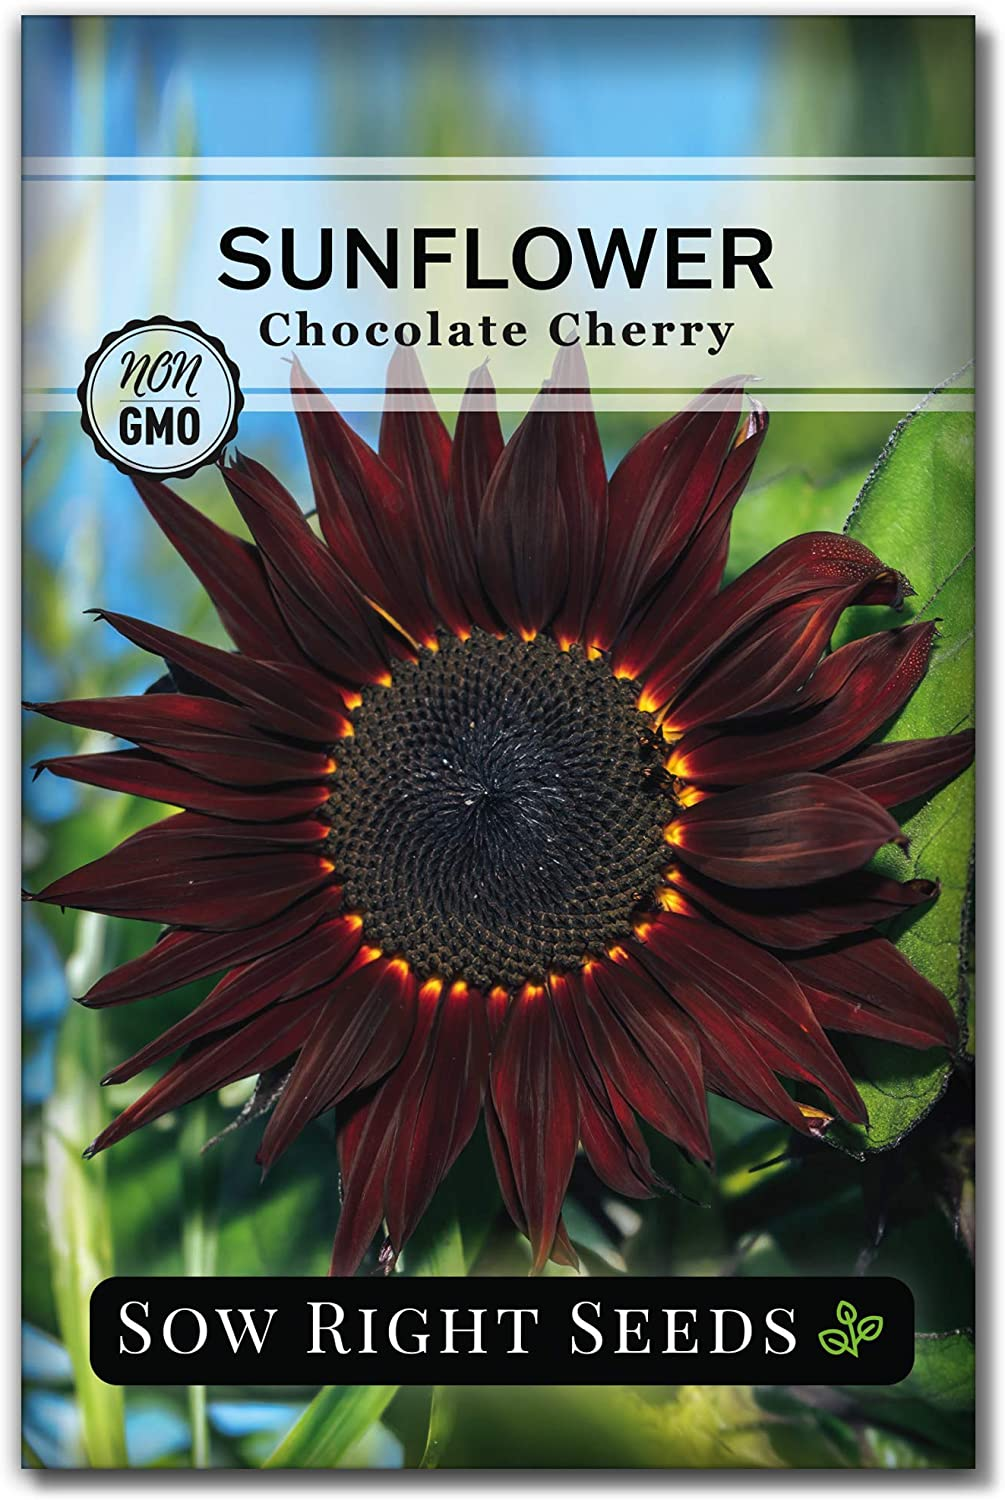 Sow Right Seeds - Chocolate Cherry Sunflower Seeds for Planting - Non-GMO Heirloom Packet with Instructions to Plant a Home Vegetable Garden